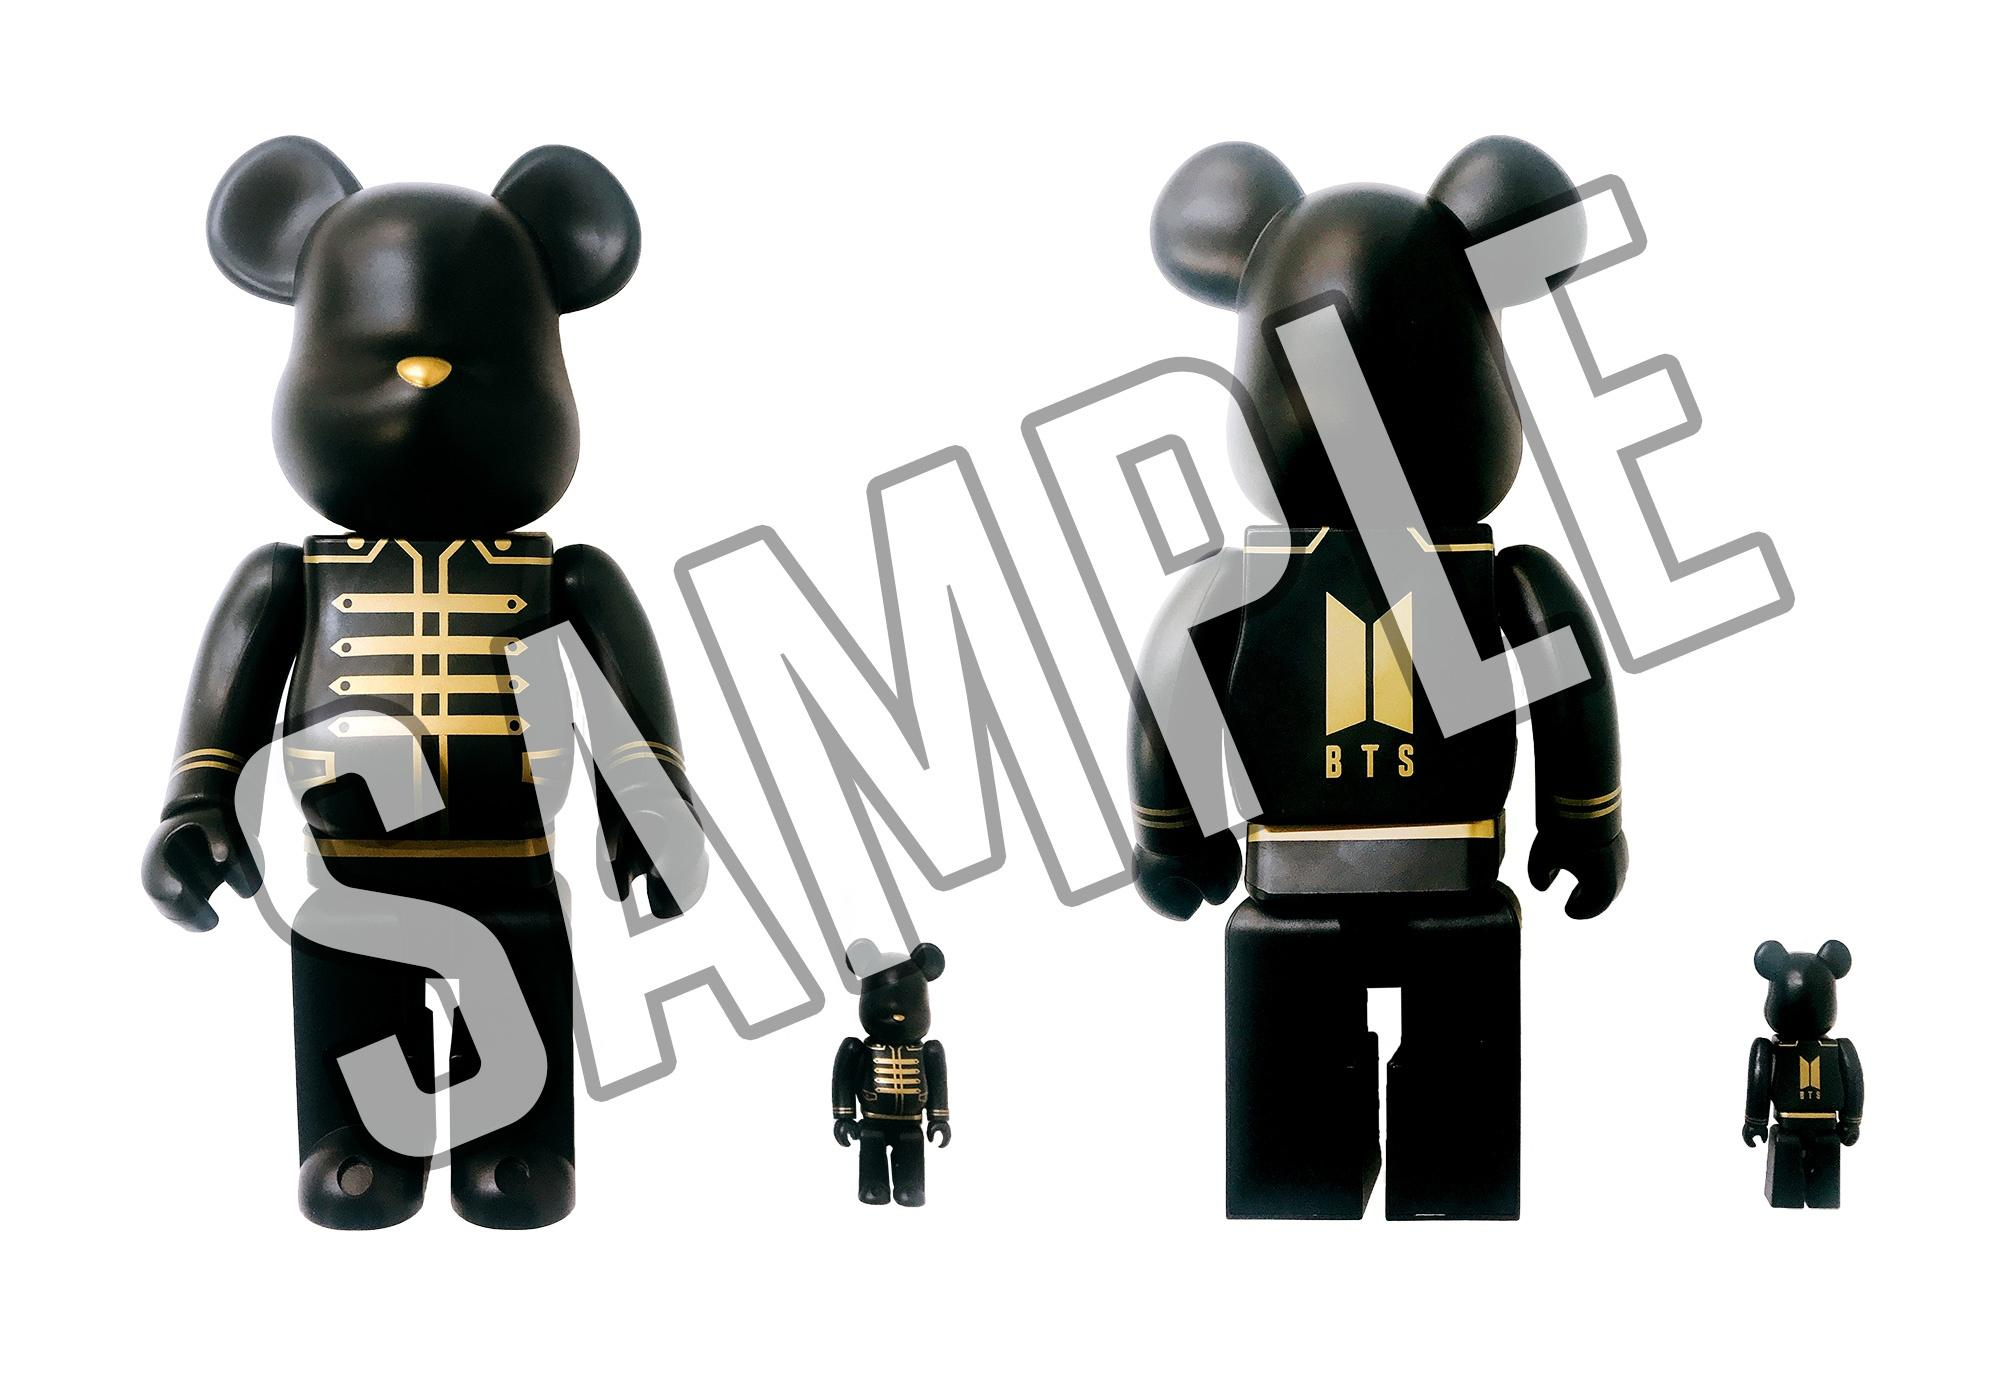 bts_toy_sample